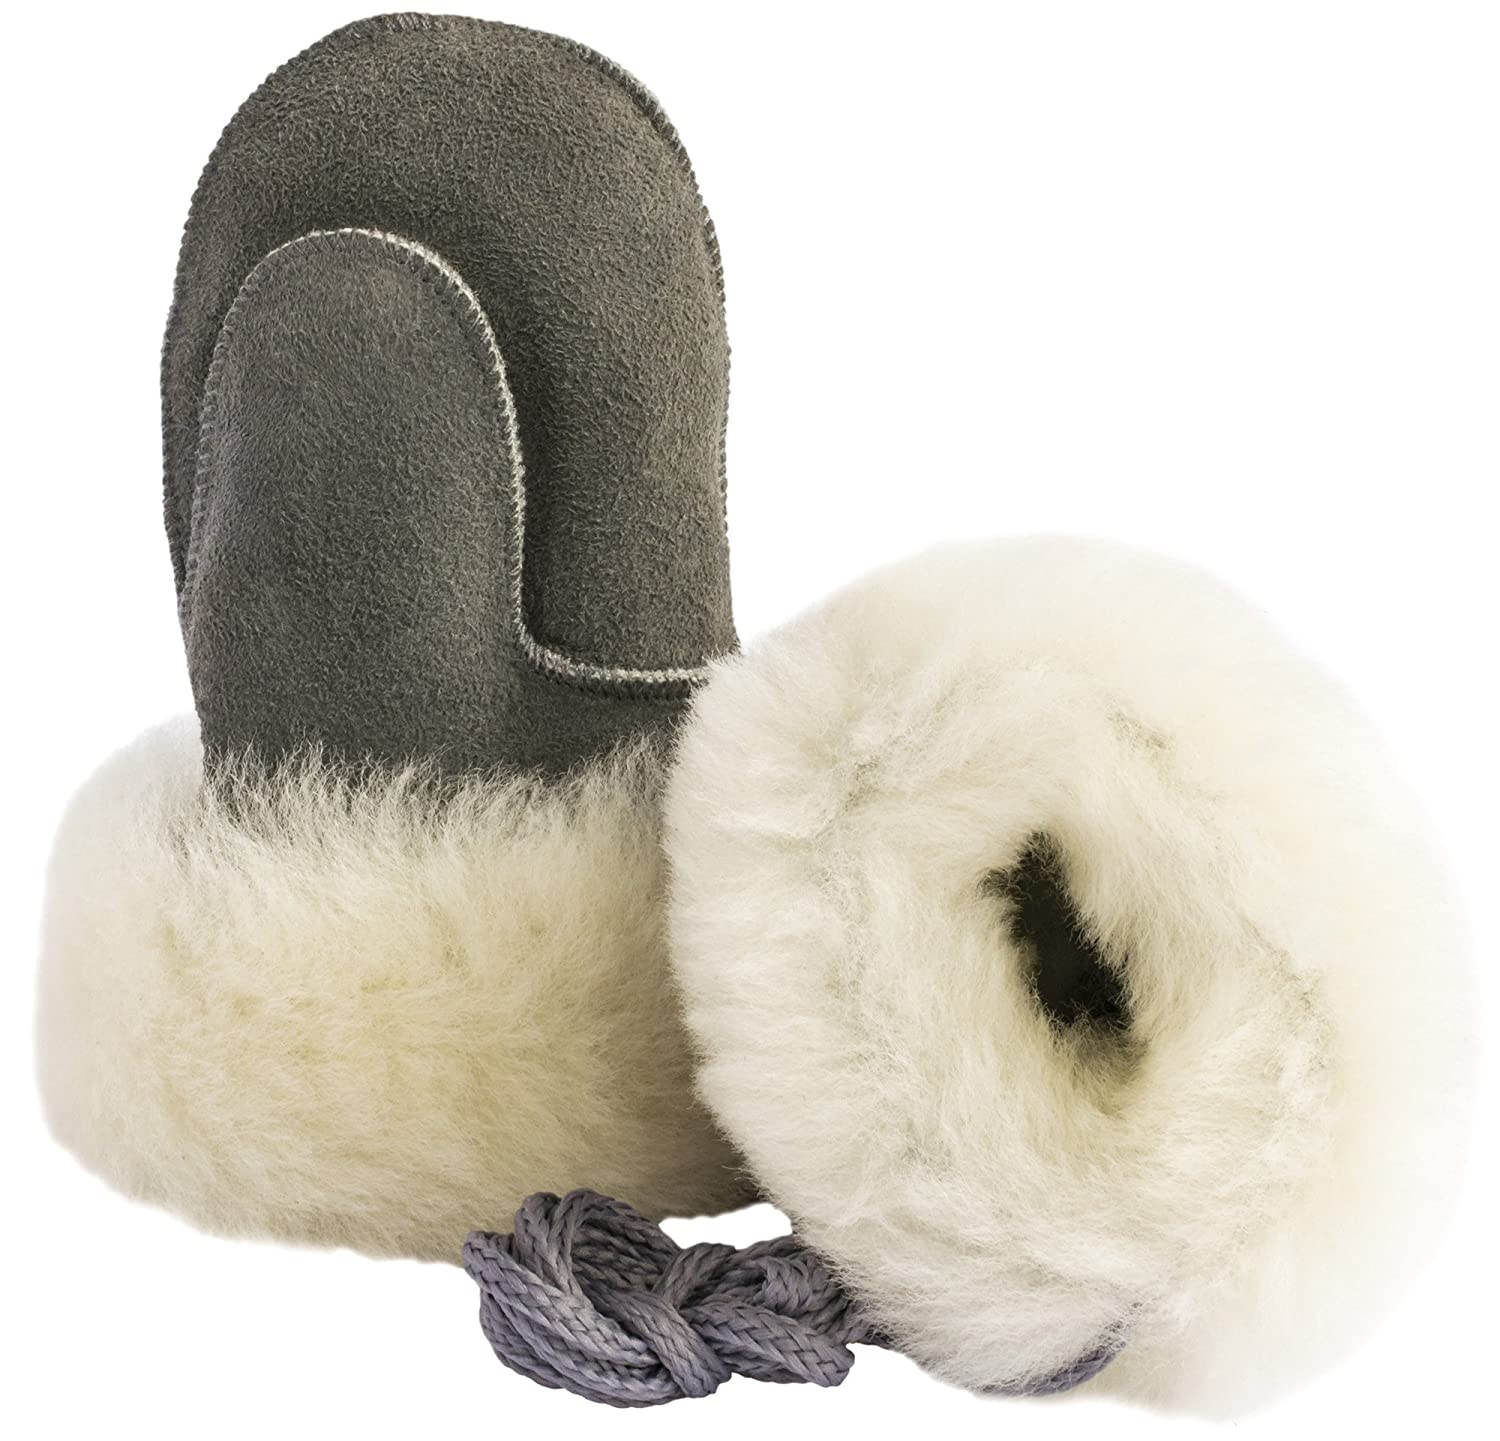 Ciora Baby Luxury Handmade 100% Lambskin Suede Mittens (Grey) With Cord - GIFT BOXED